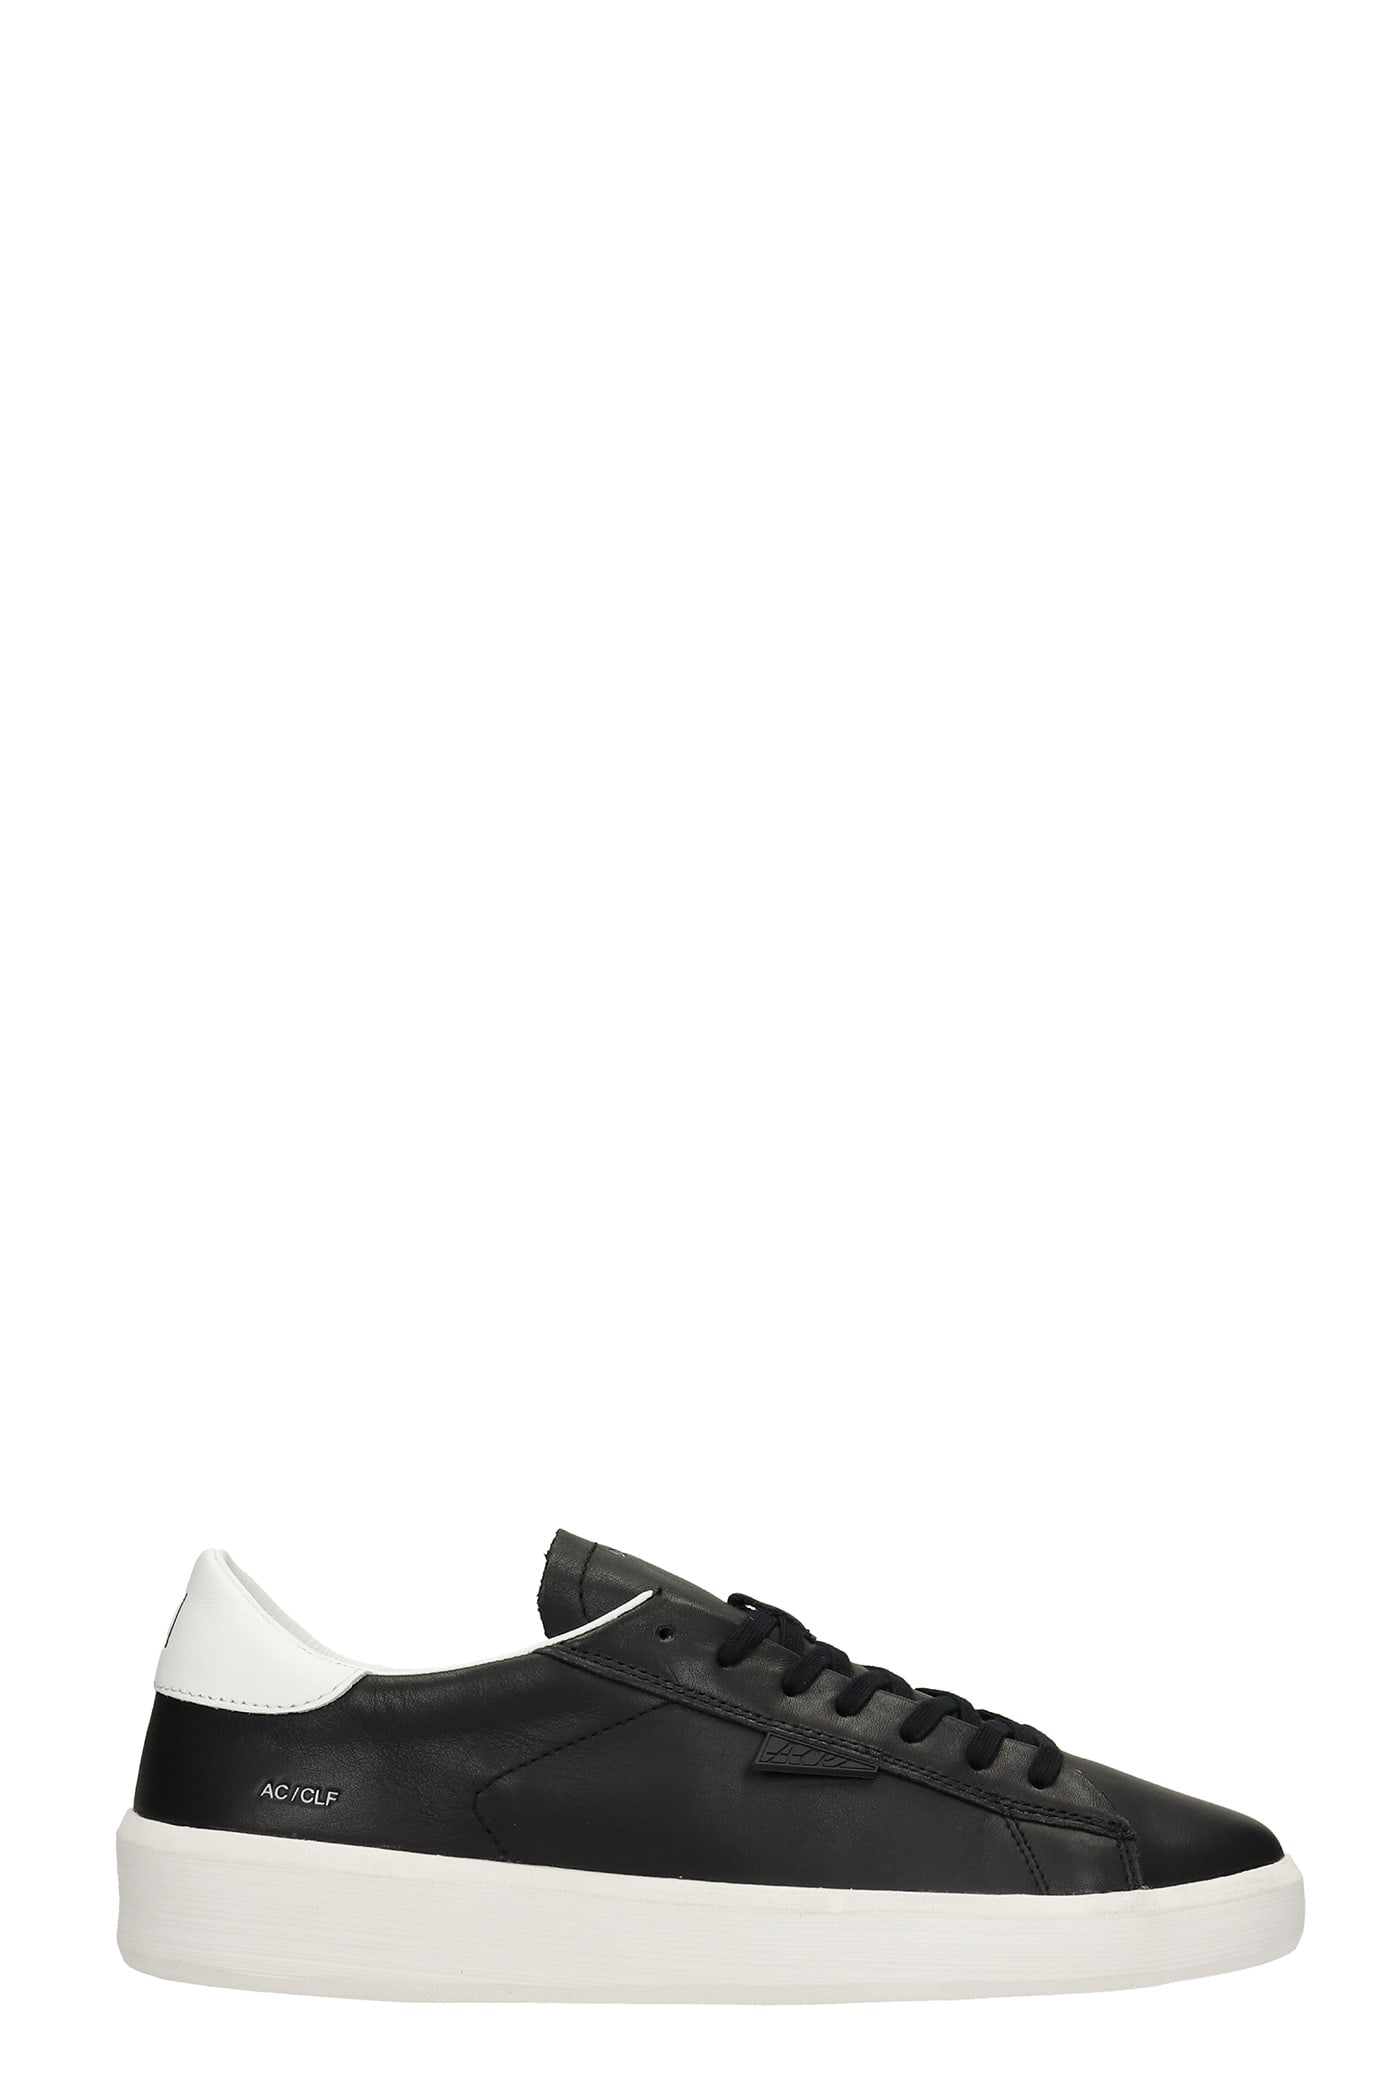 Ace Sneakers In Black Leather